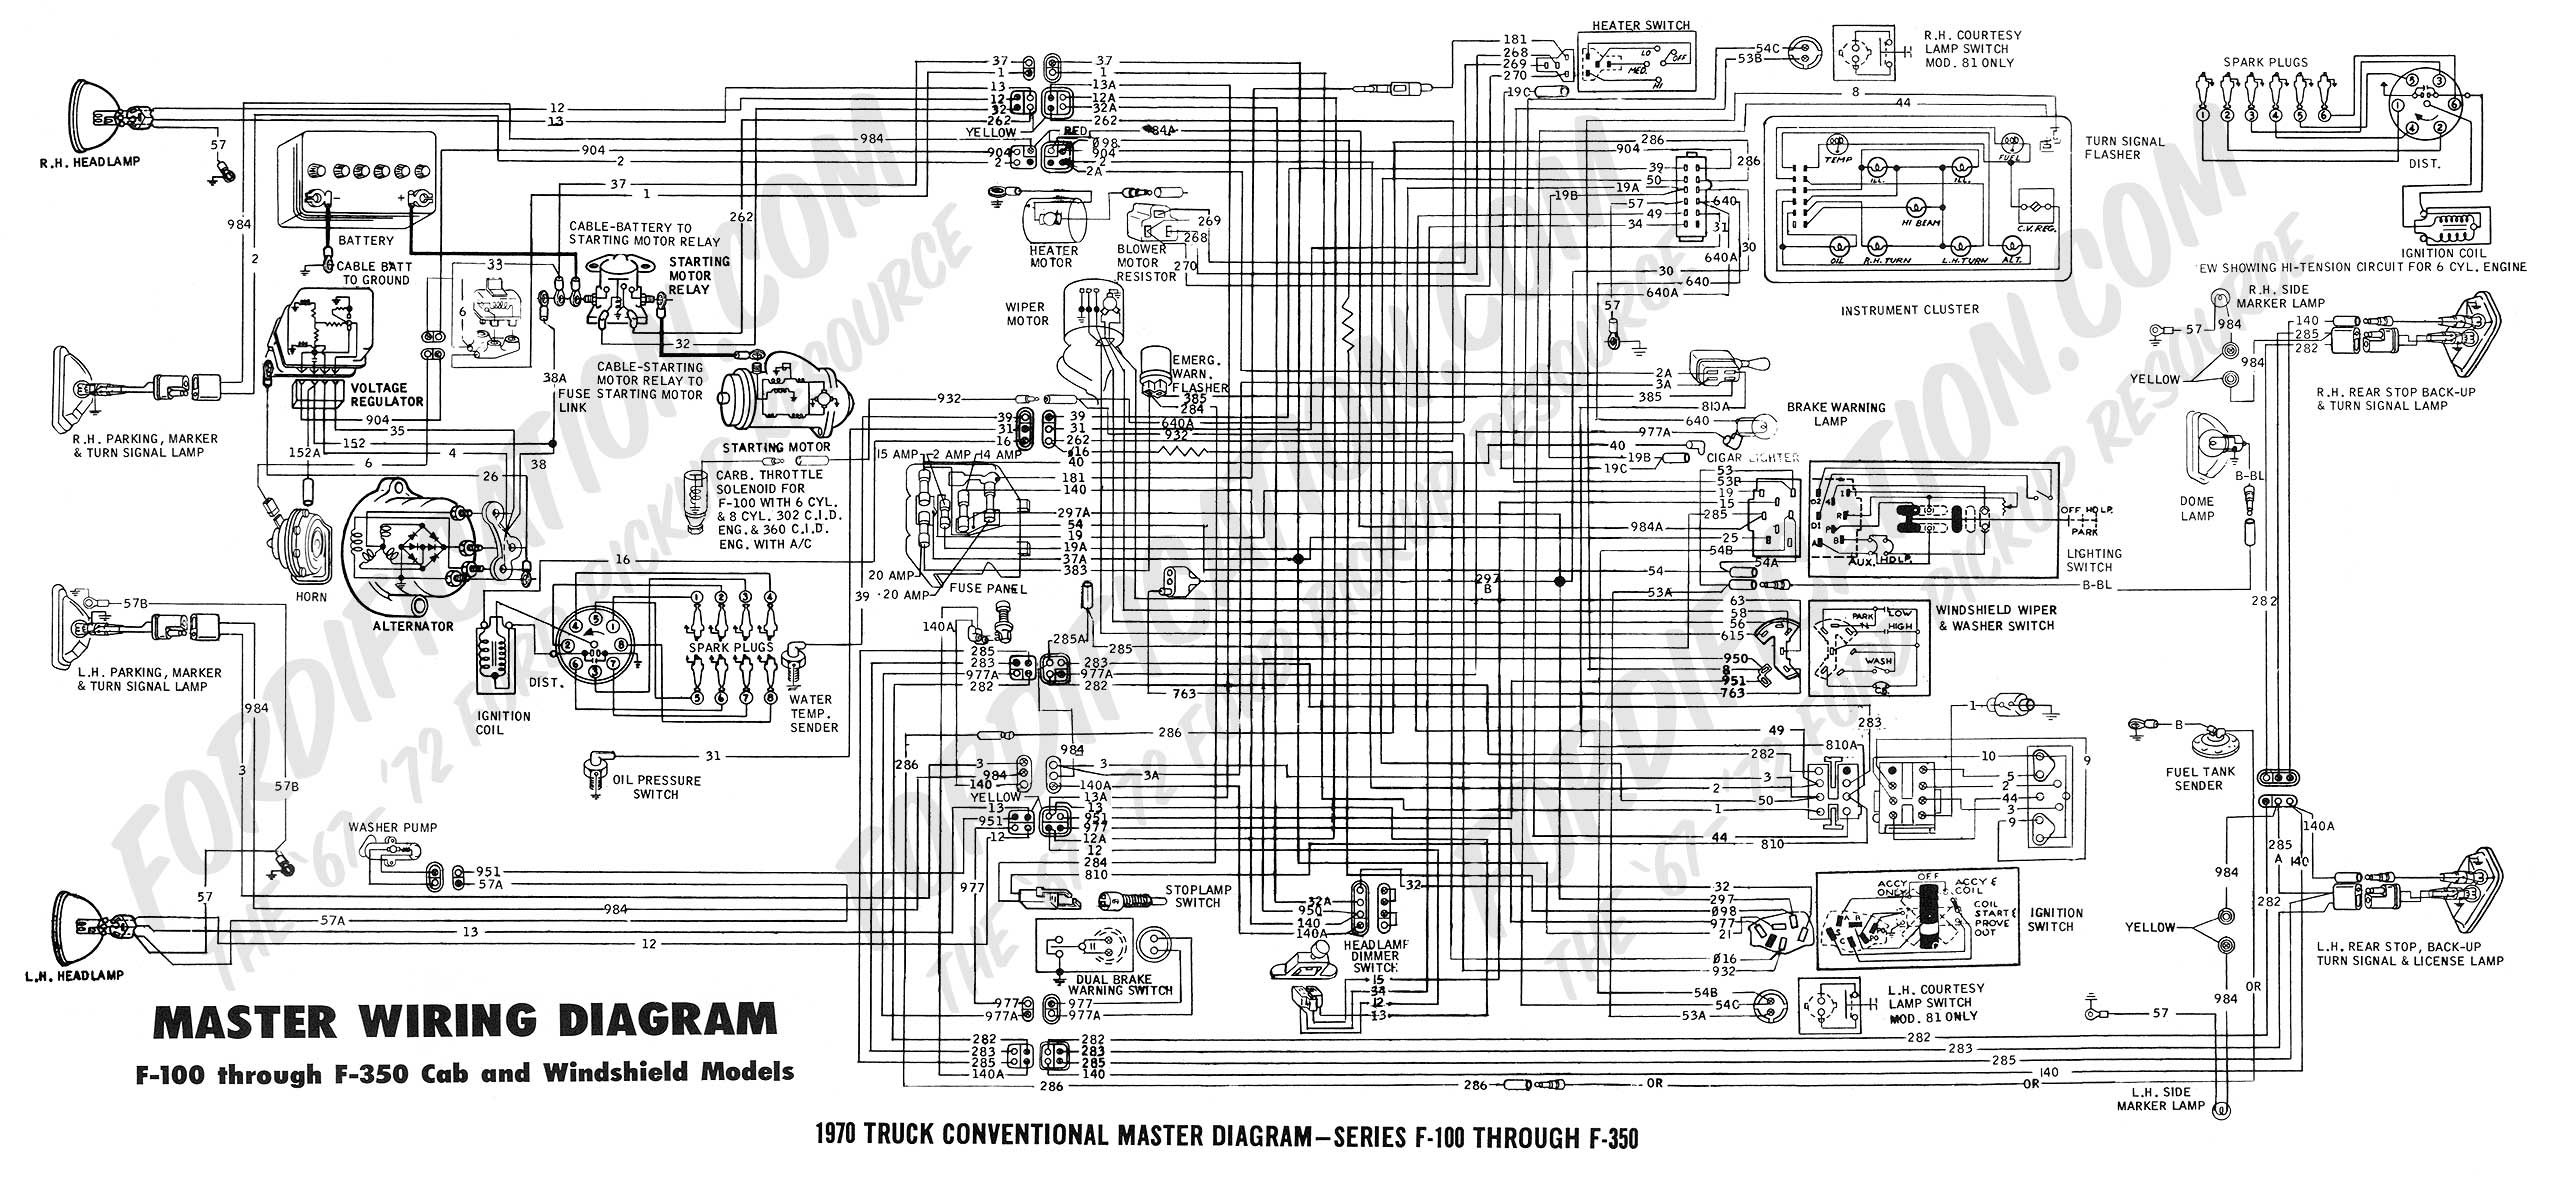 wiring diagram 70_master 2007 f250 wiring diagram wiring diagram schematic name